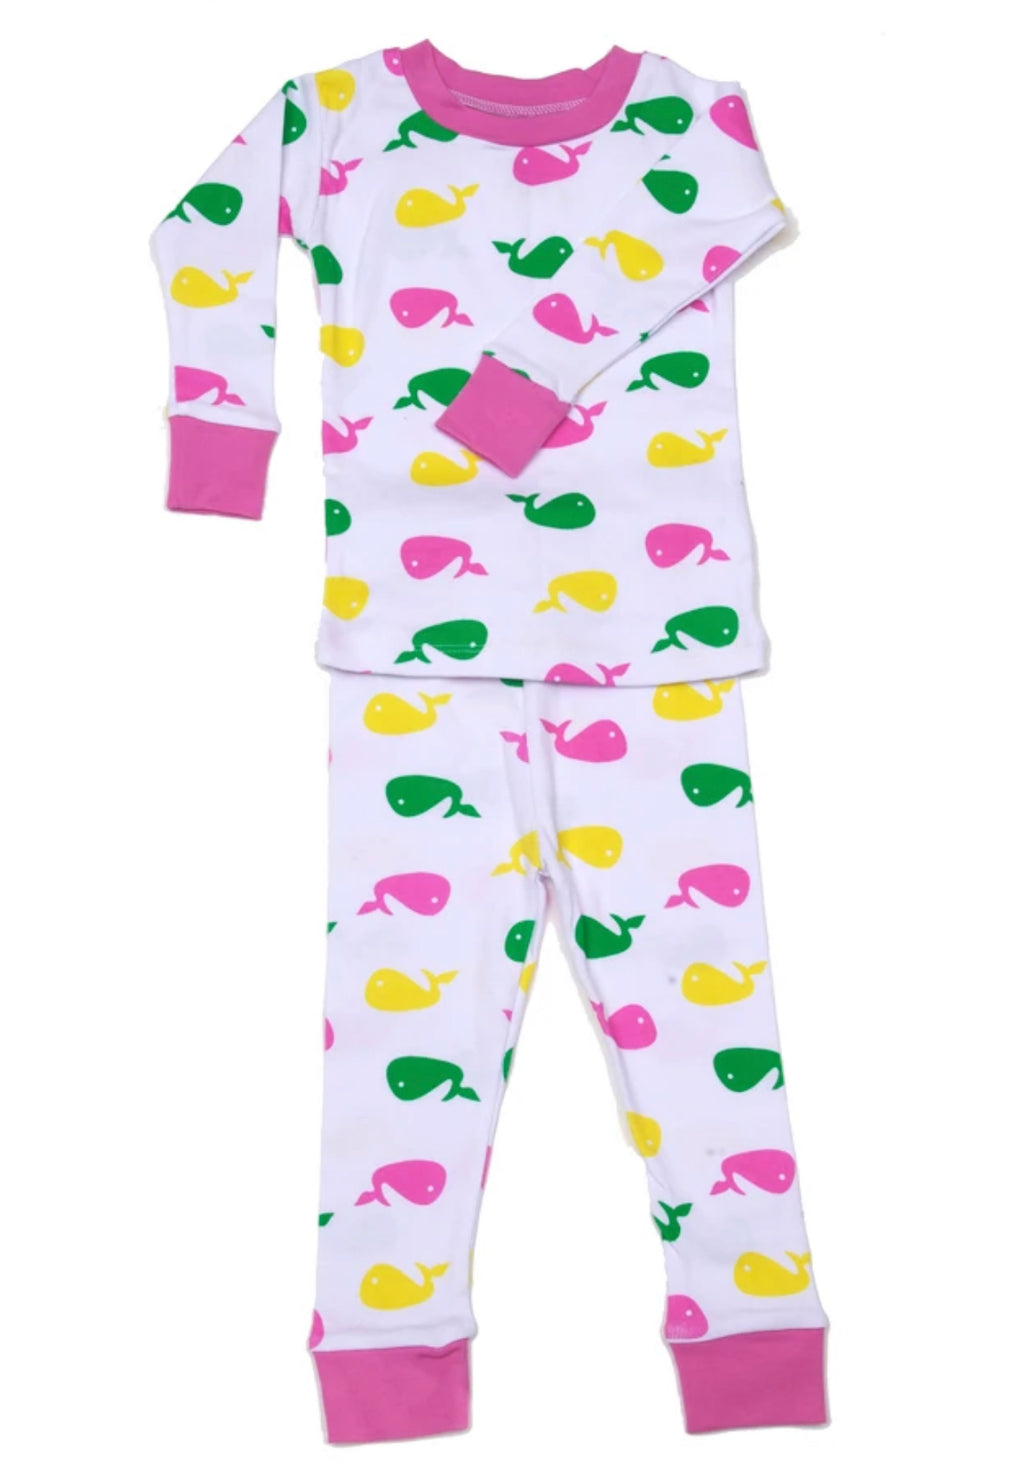 New Jammies Pink Whale Pajamas